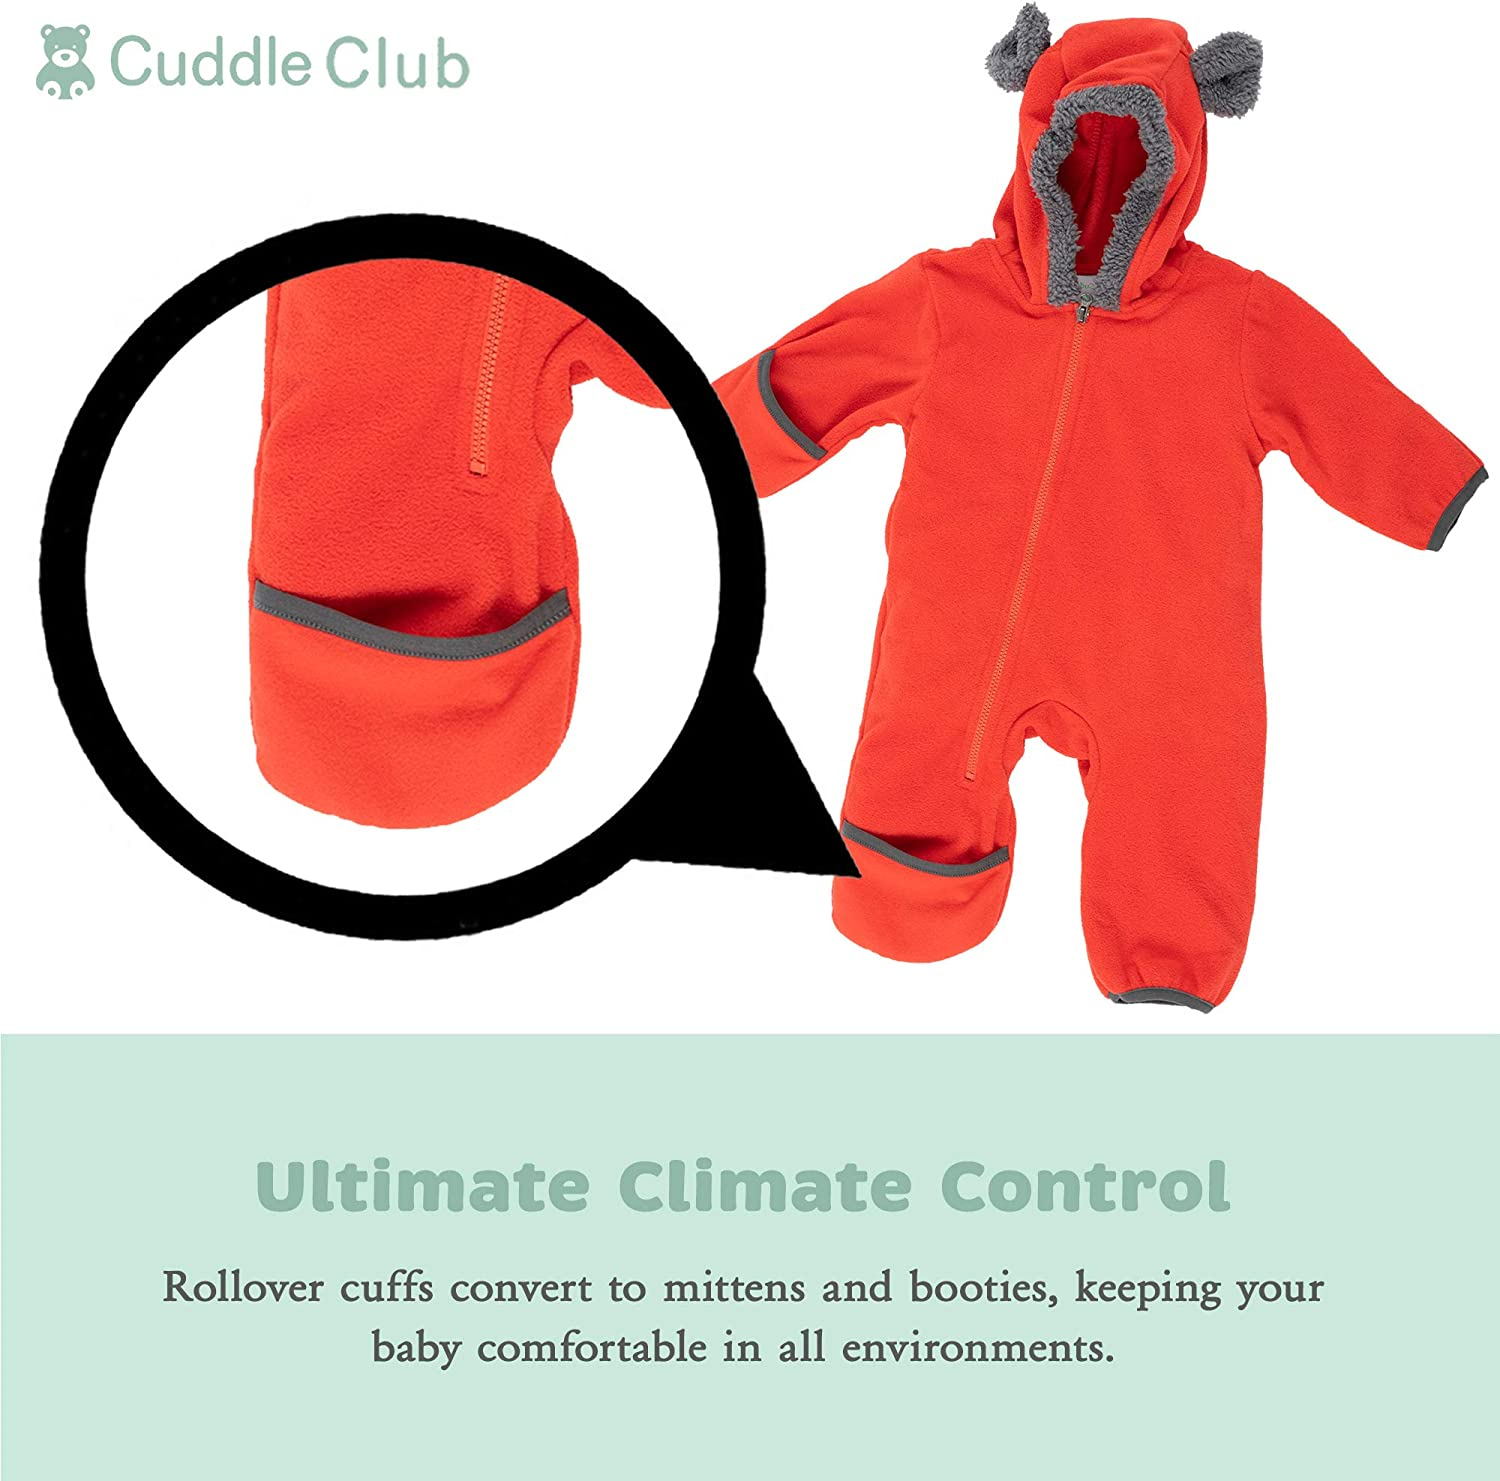 Cuddle Club Fleece Baby Bunting Bodysuit for Newborn to 5T Infant Pajamas Winter Jacket Outerwear Coat Toddler Costume